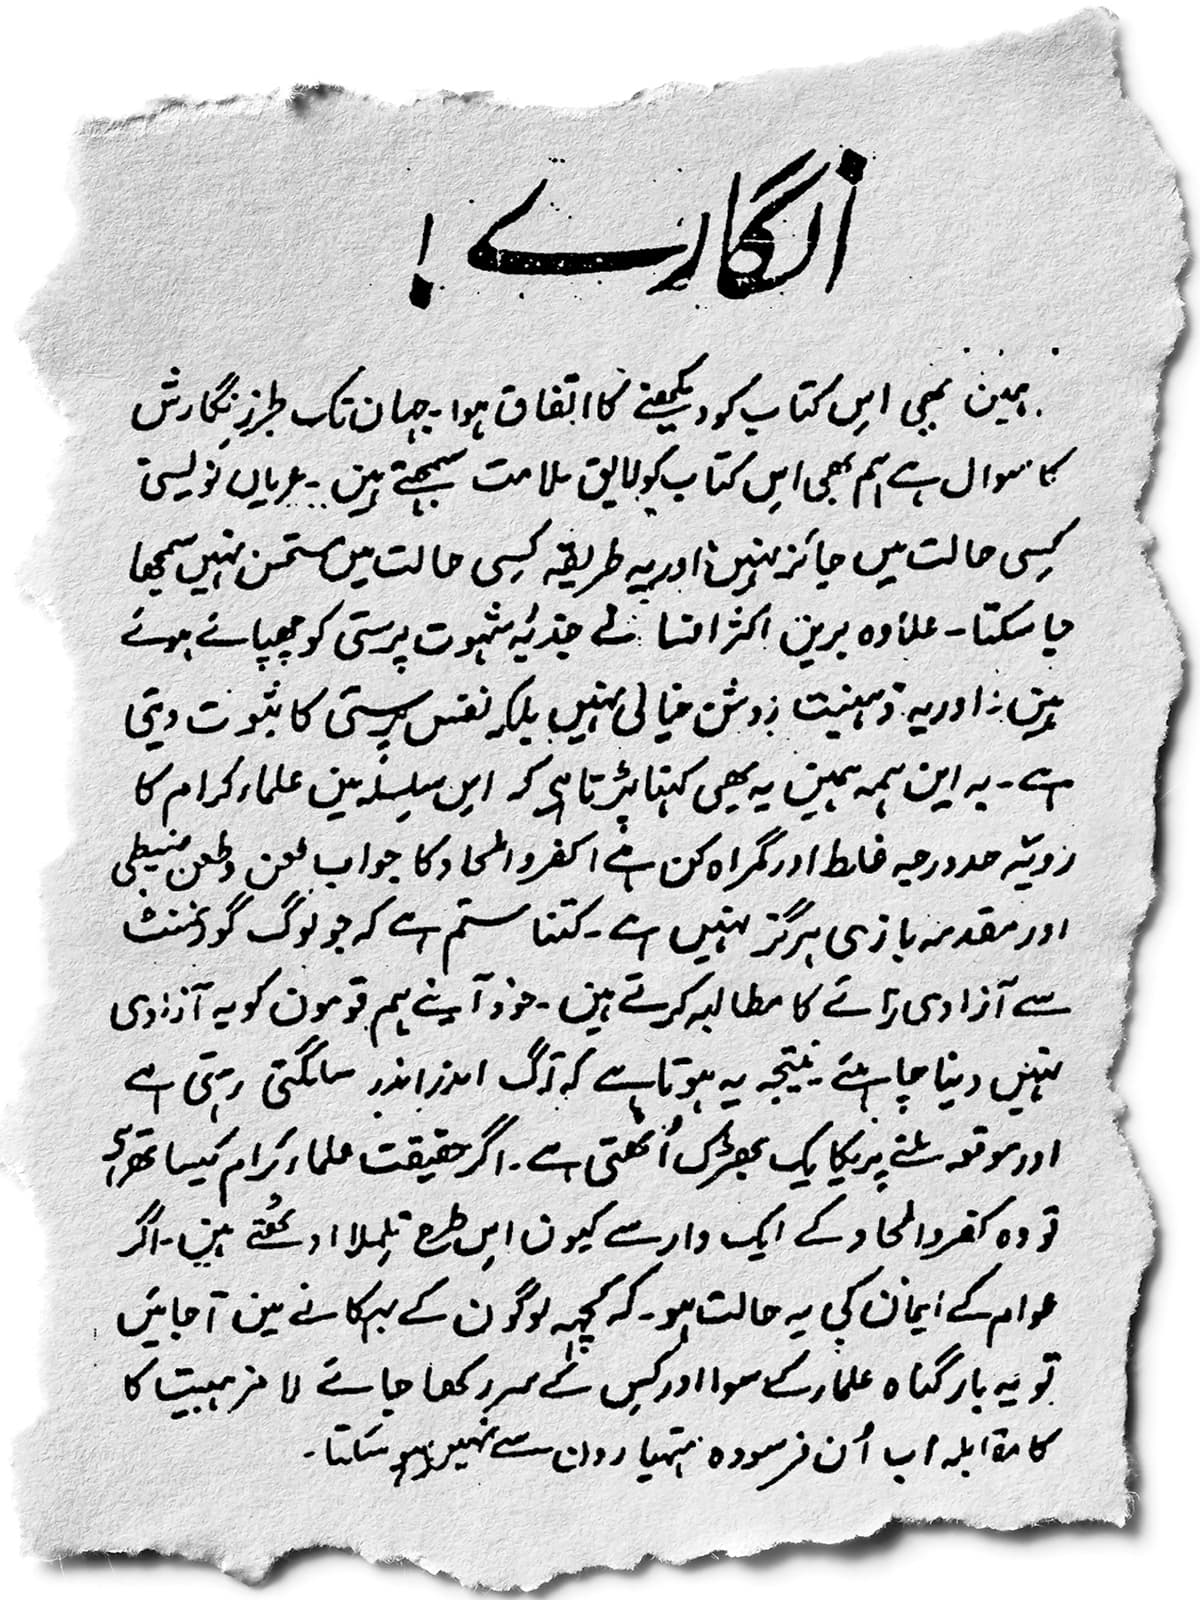 An excerpt from a news item published in Aligarh-based weekly Payam on March 5, 1993